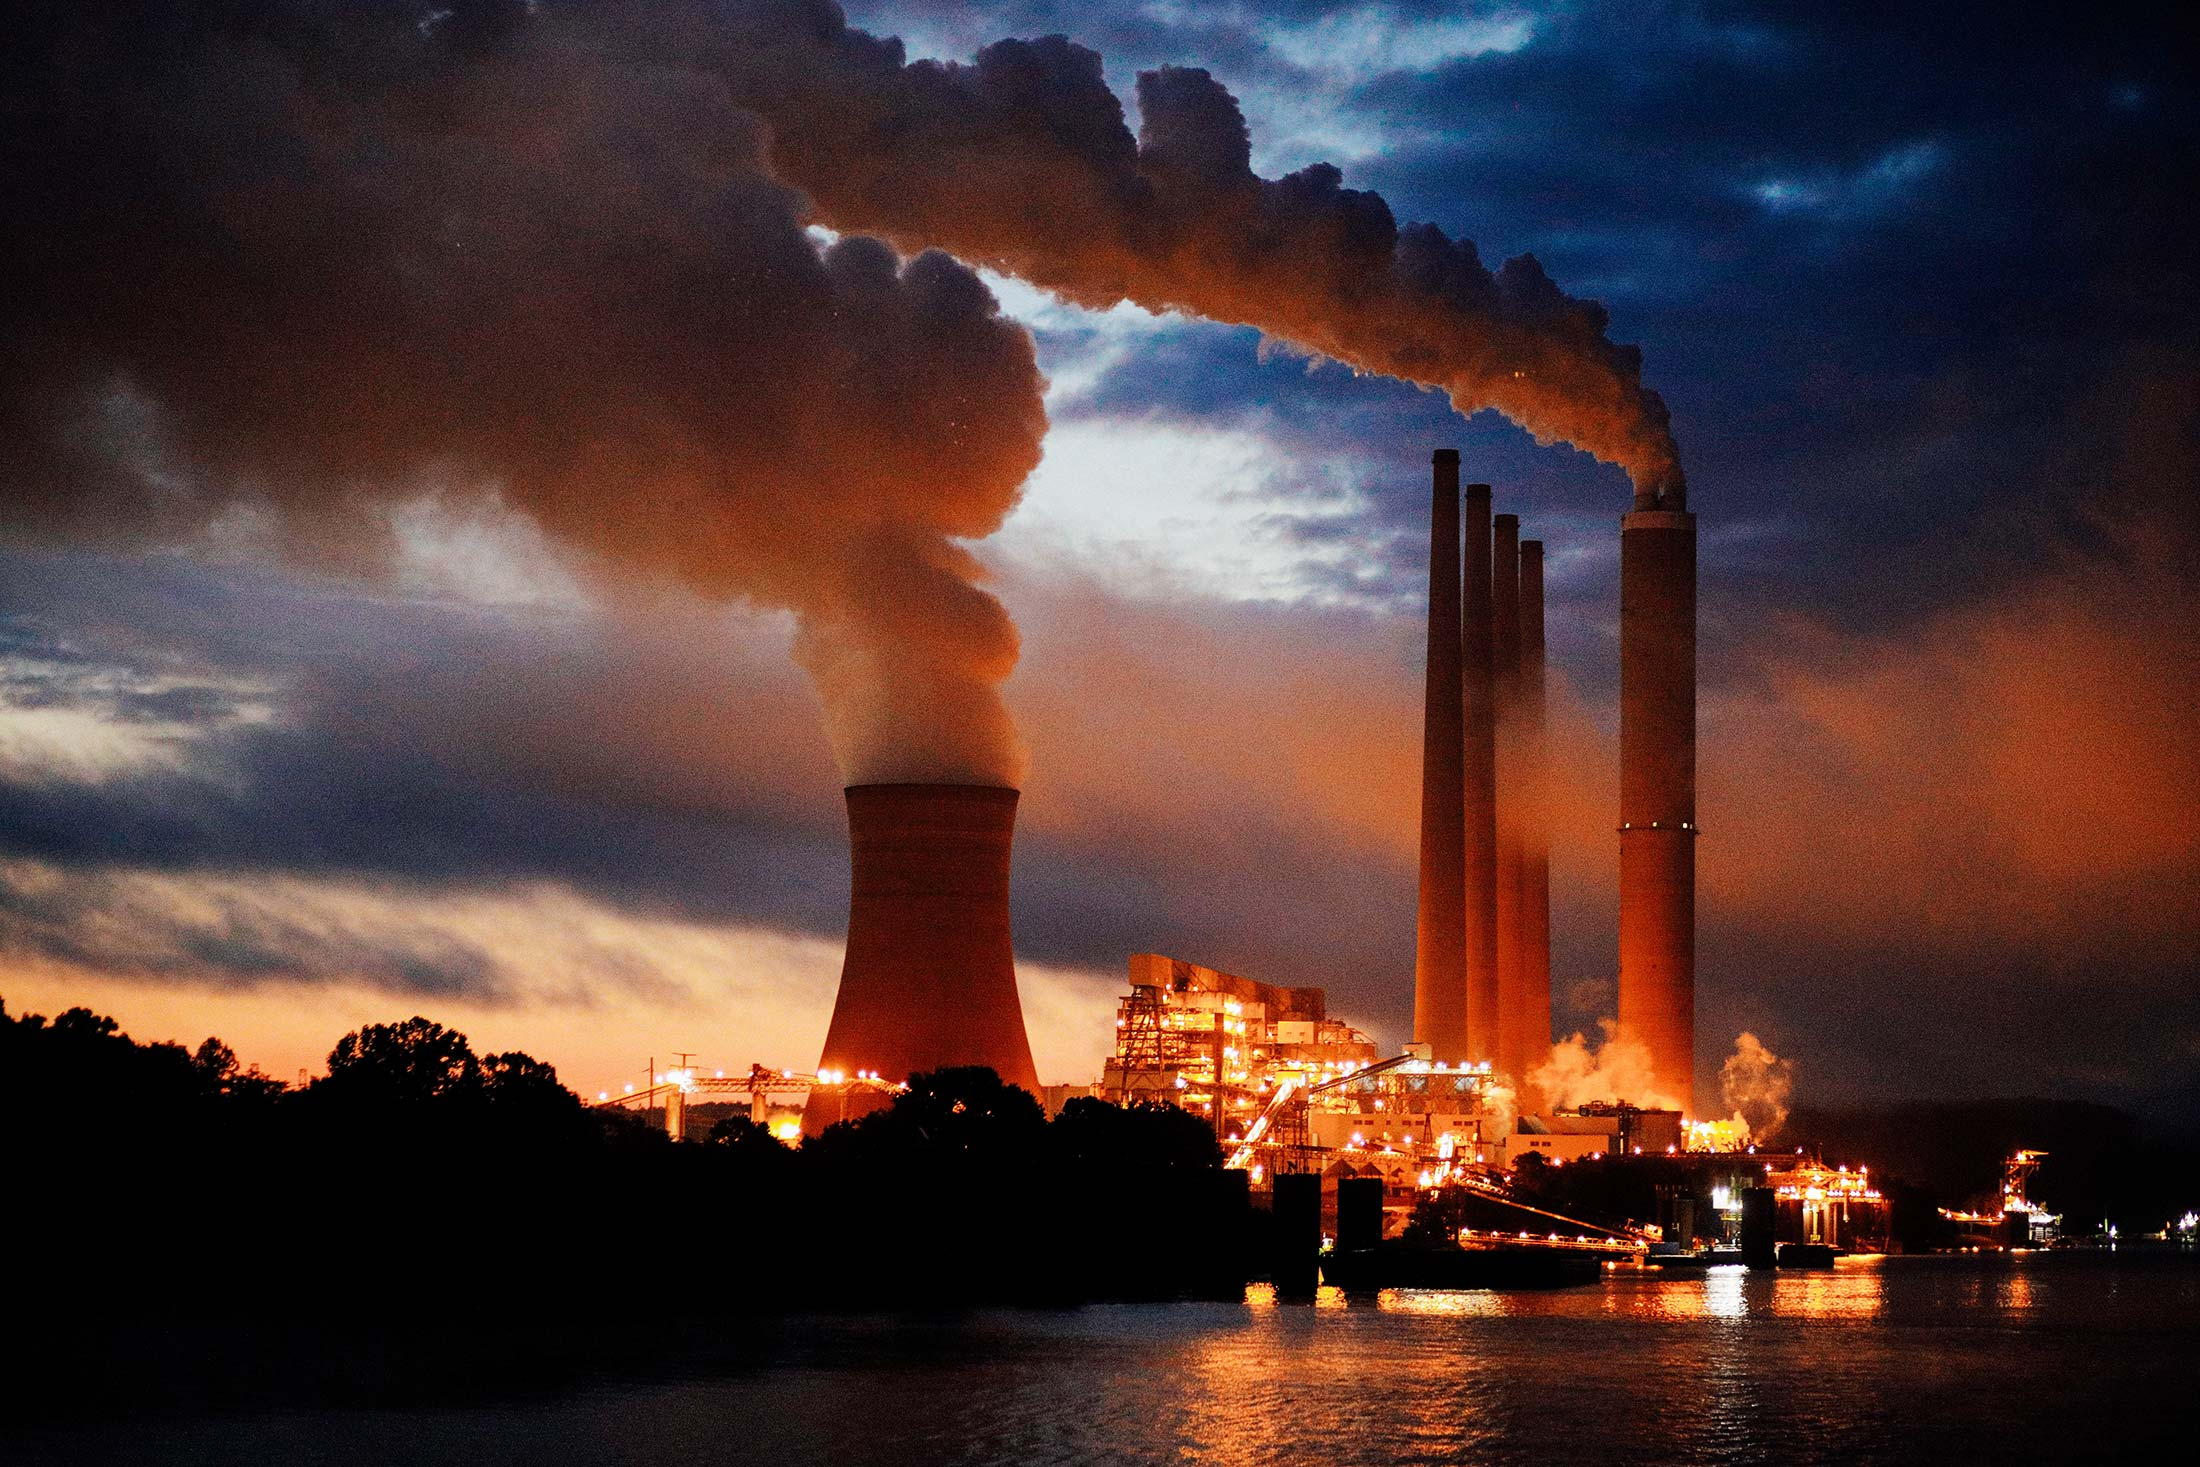 Coal-fired power plant lights up the early morning sky on the banks of the Ohio River.